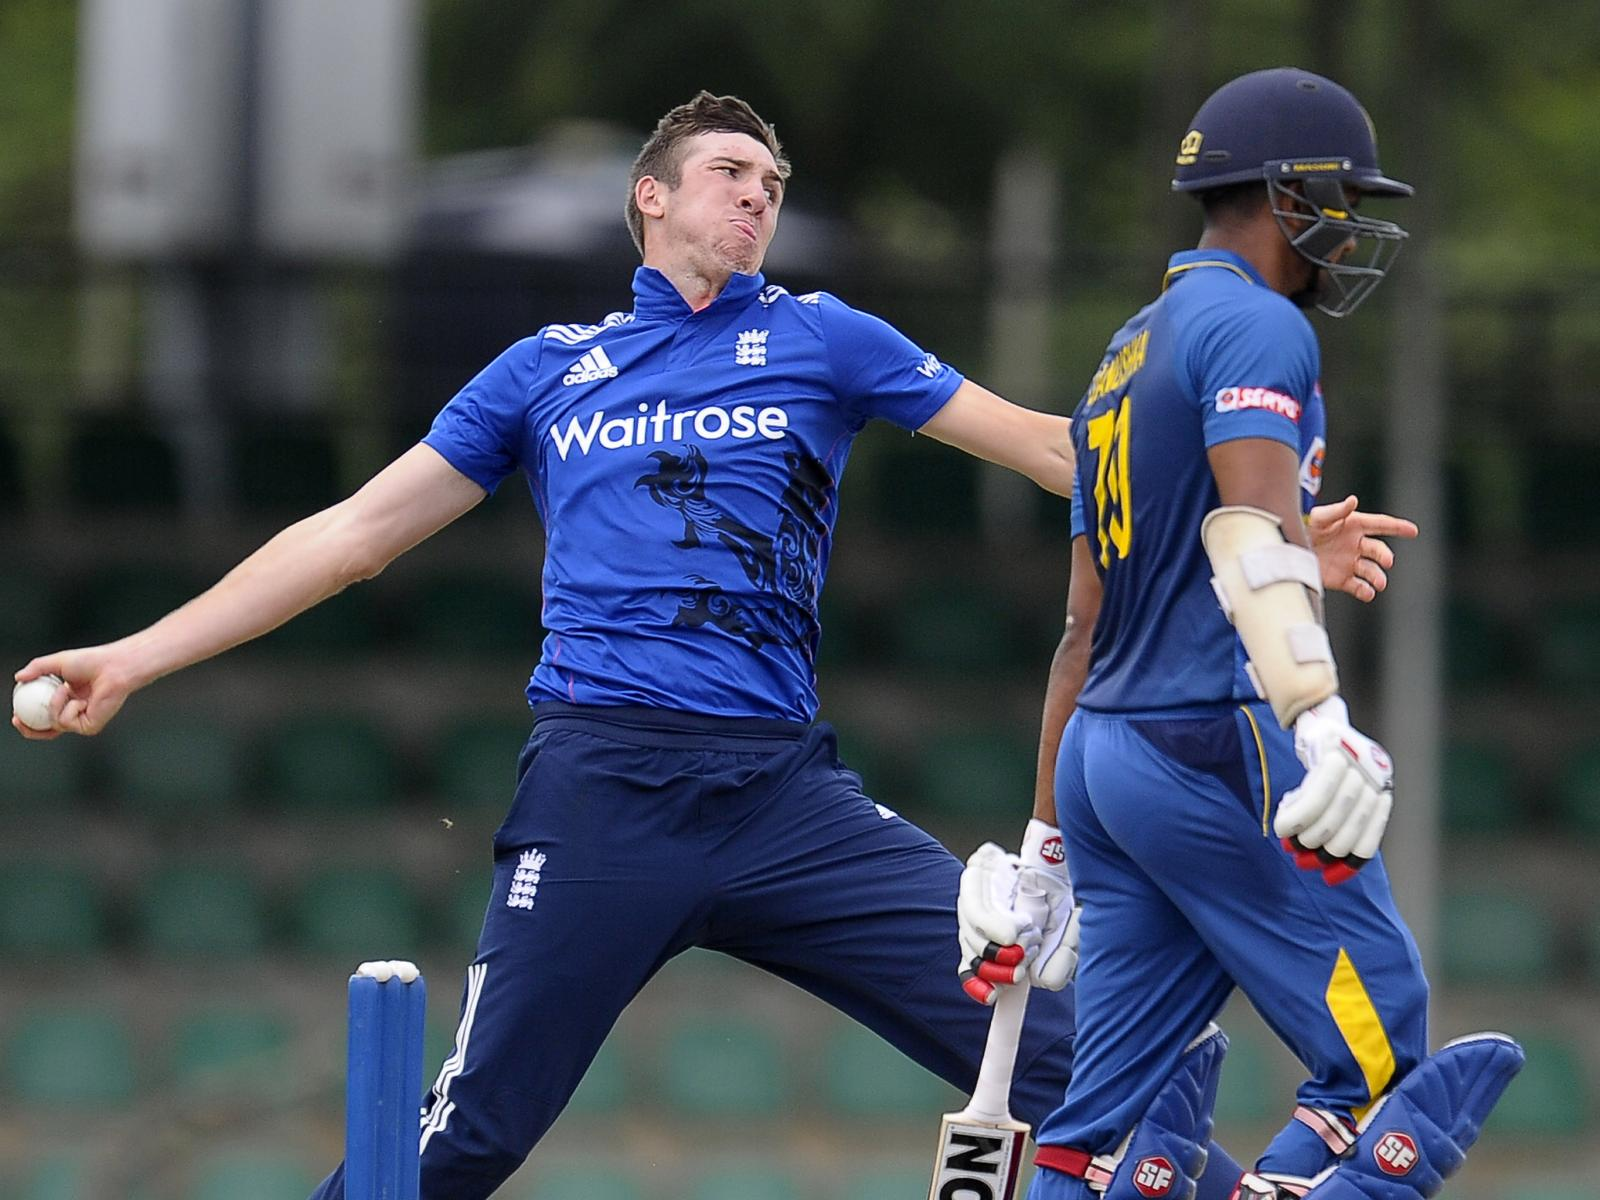 Craig Overton bowling for England A<br>credit: ECB Press Office